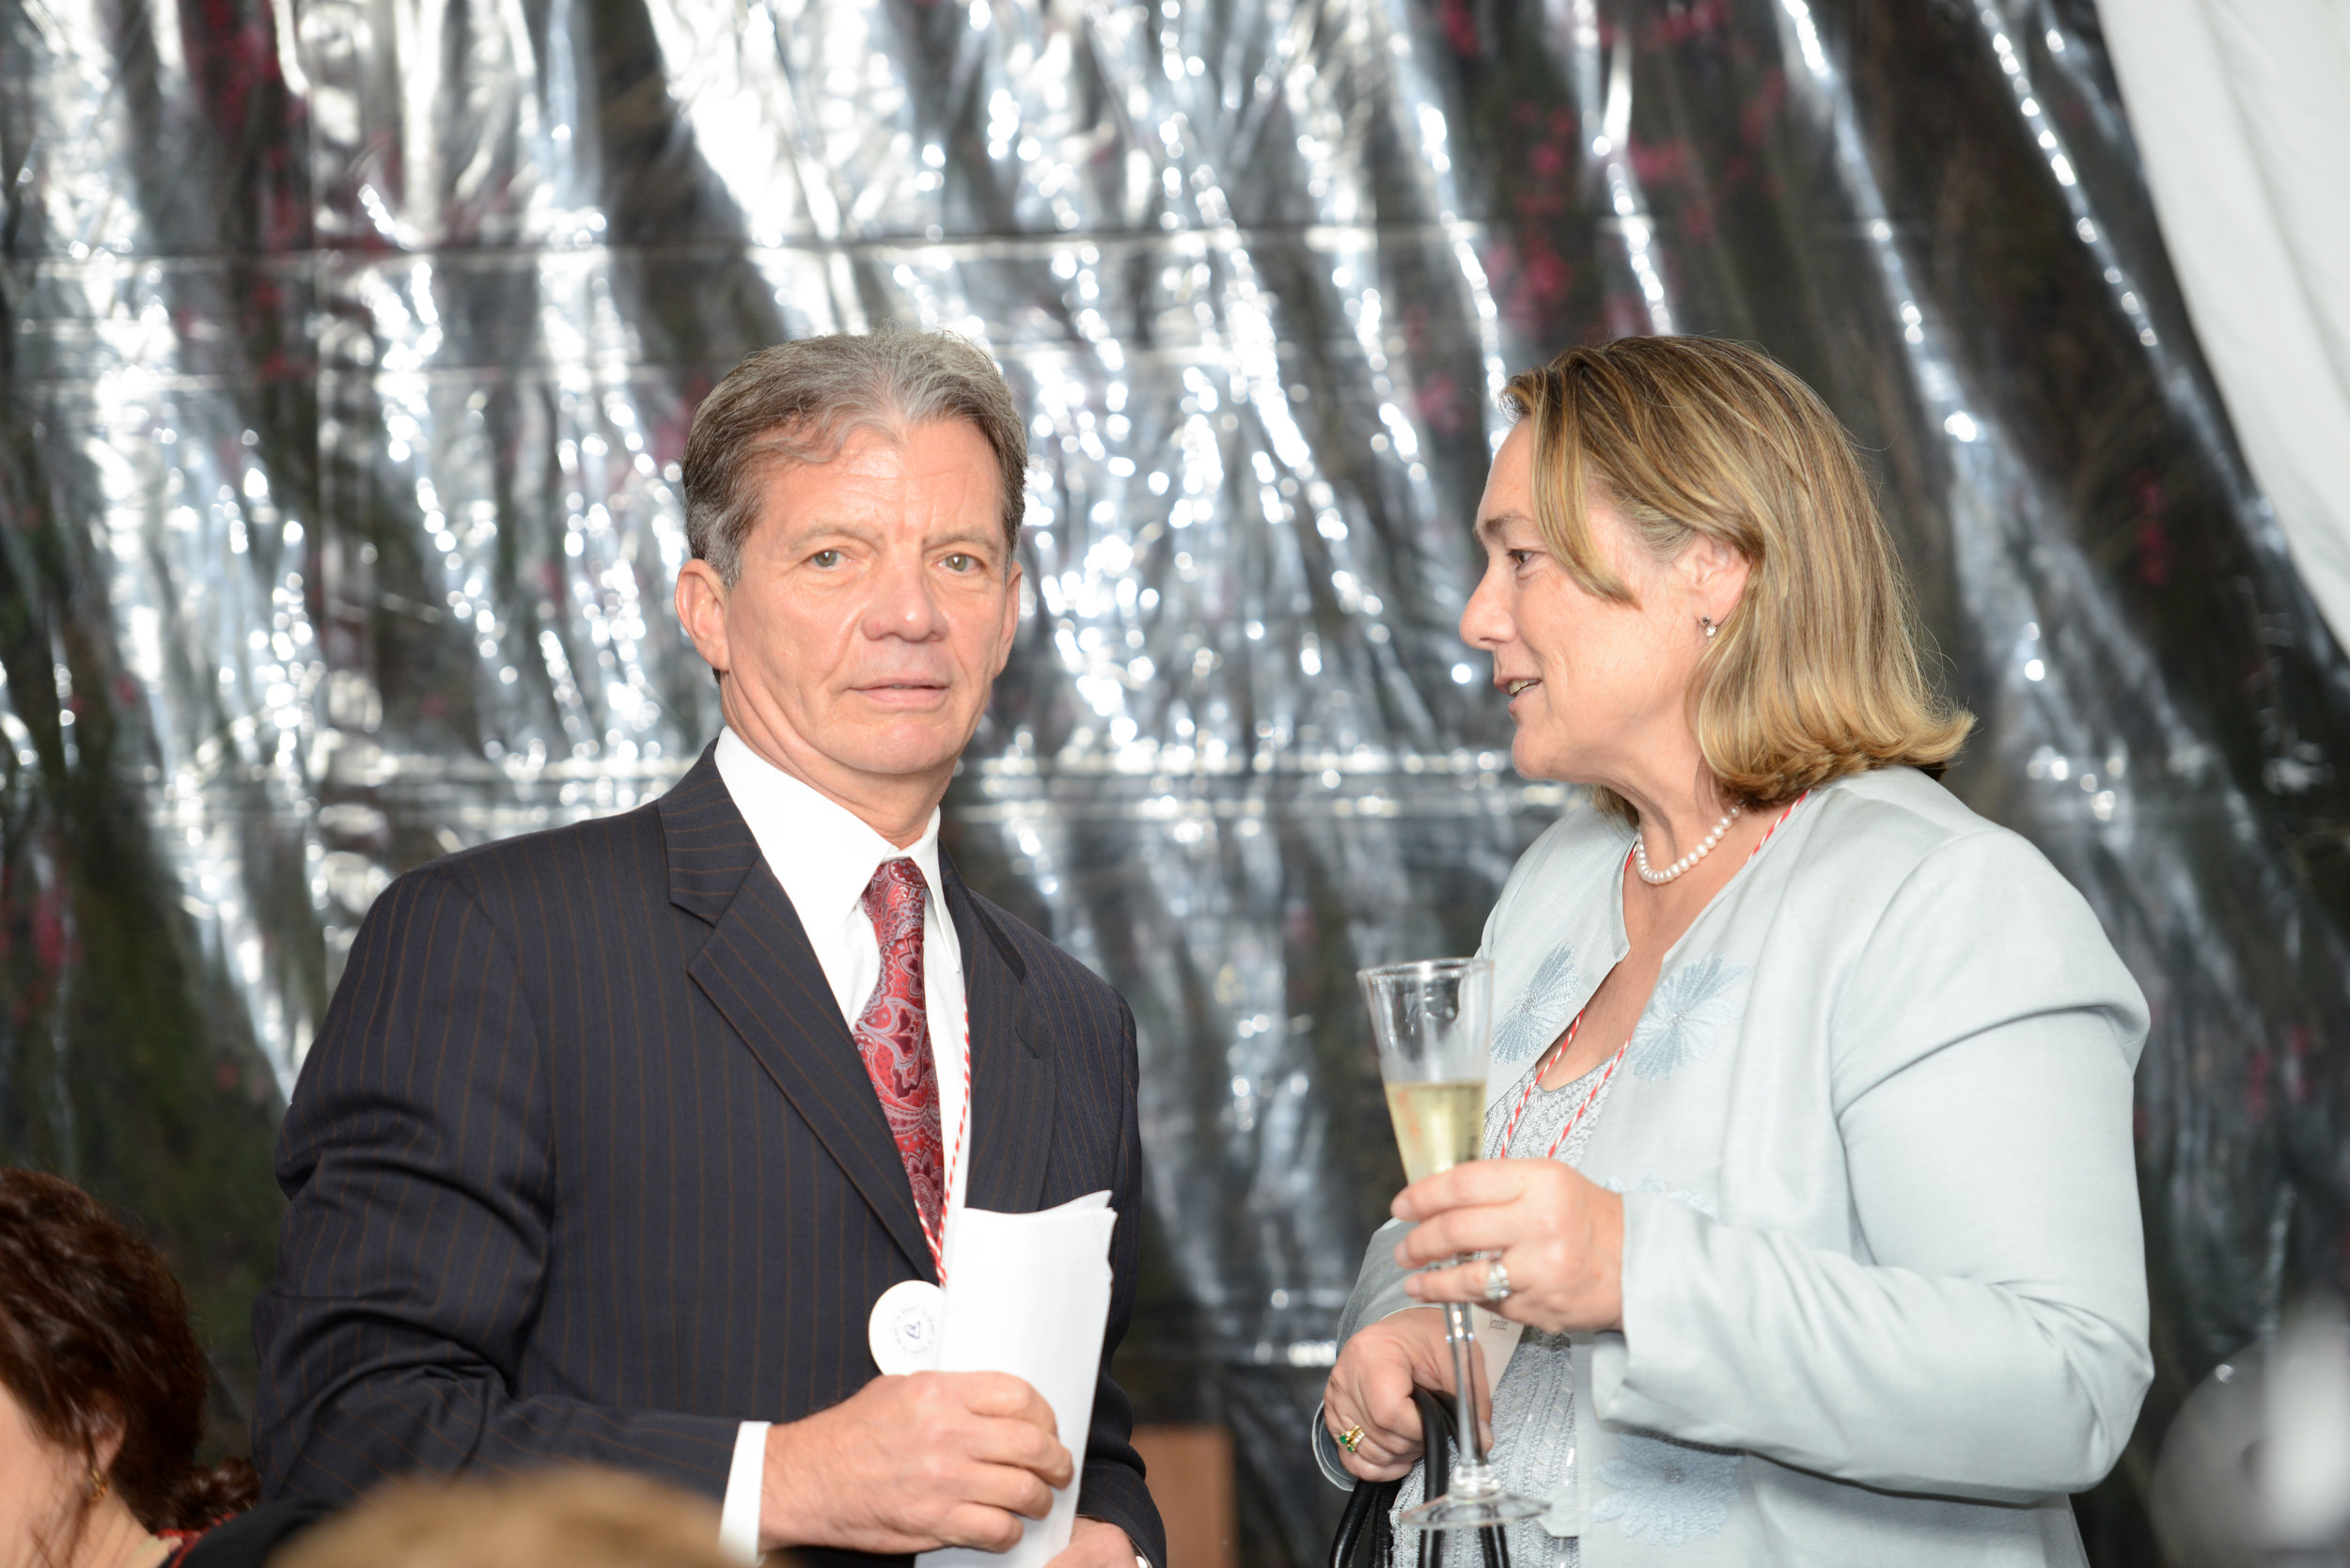 Nilas Young, MD and Jennifer Osborne Share a Moment